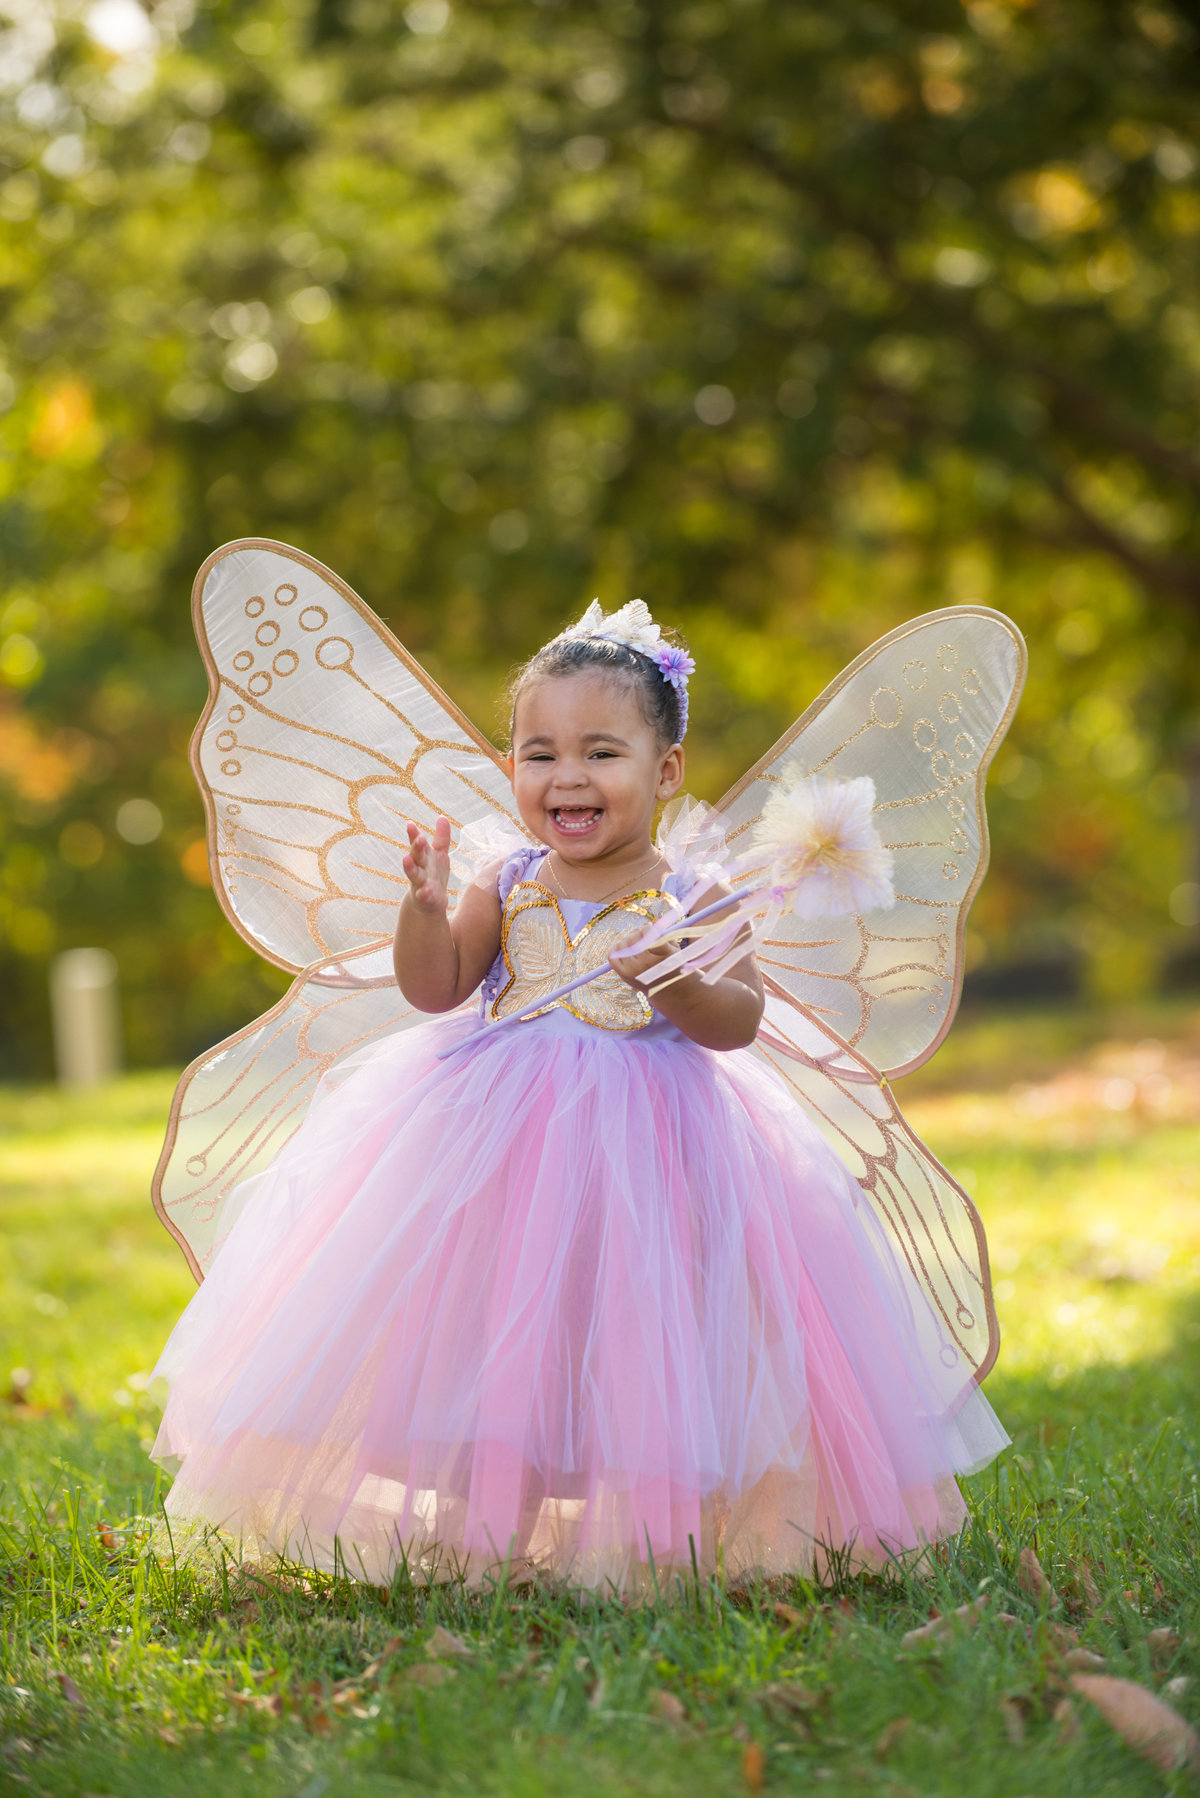 Capturing special birthday moments through childrens photography